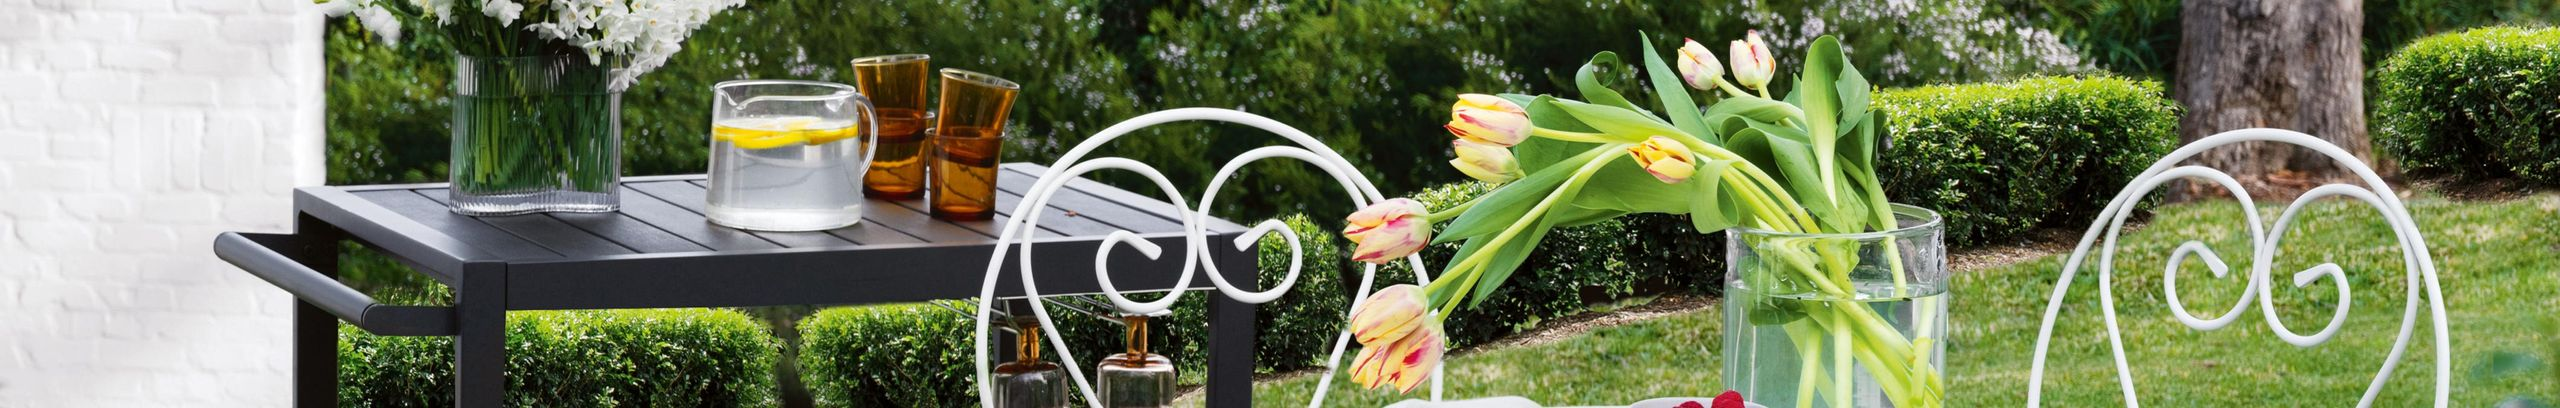 black bar table and white metal outdoor setting on lawn with fresh flowers and fruit